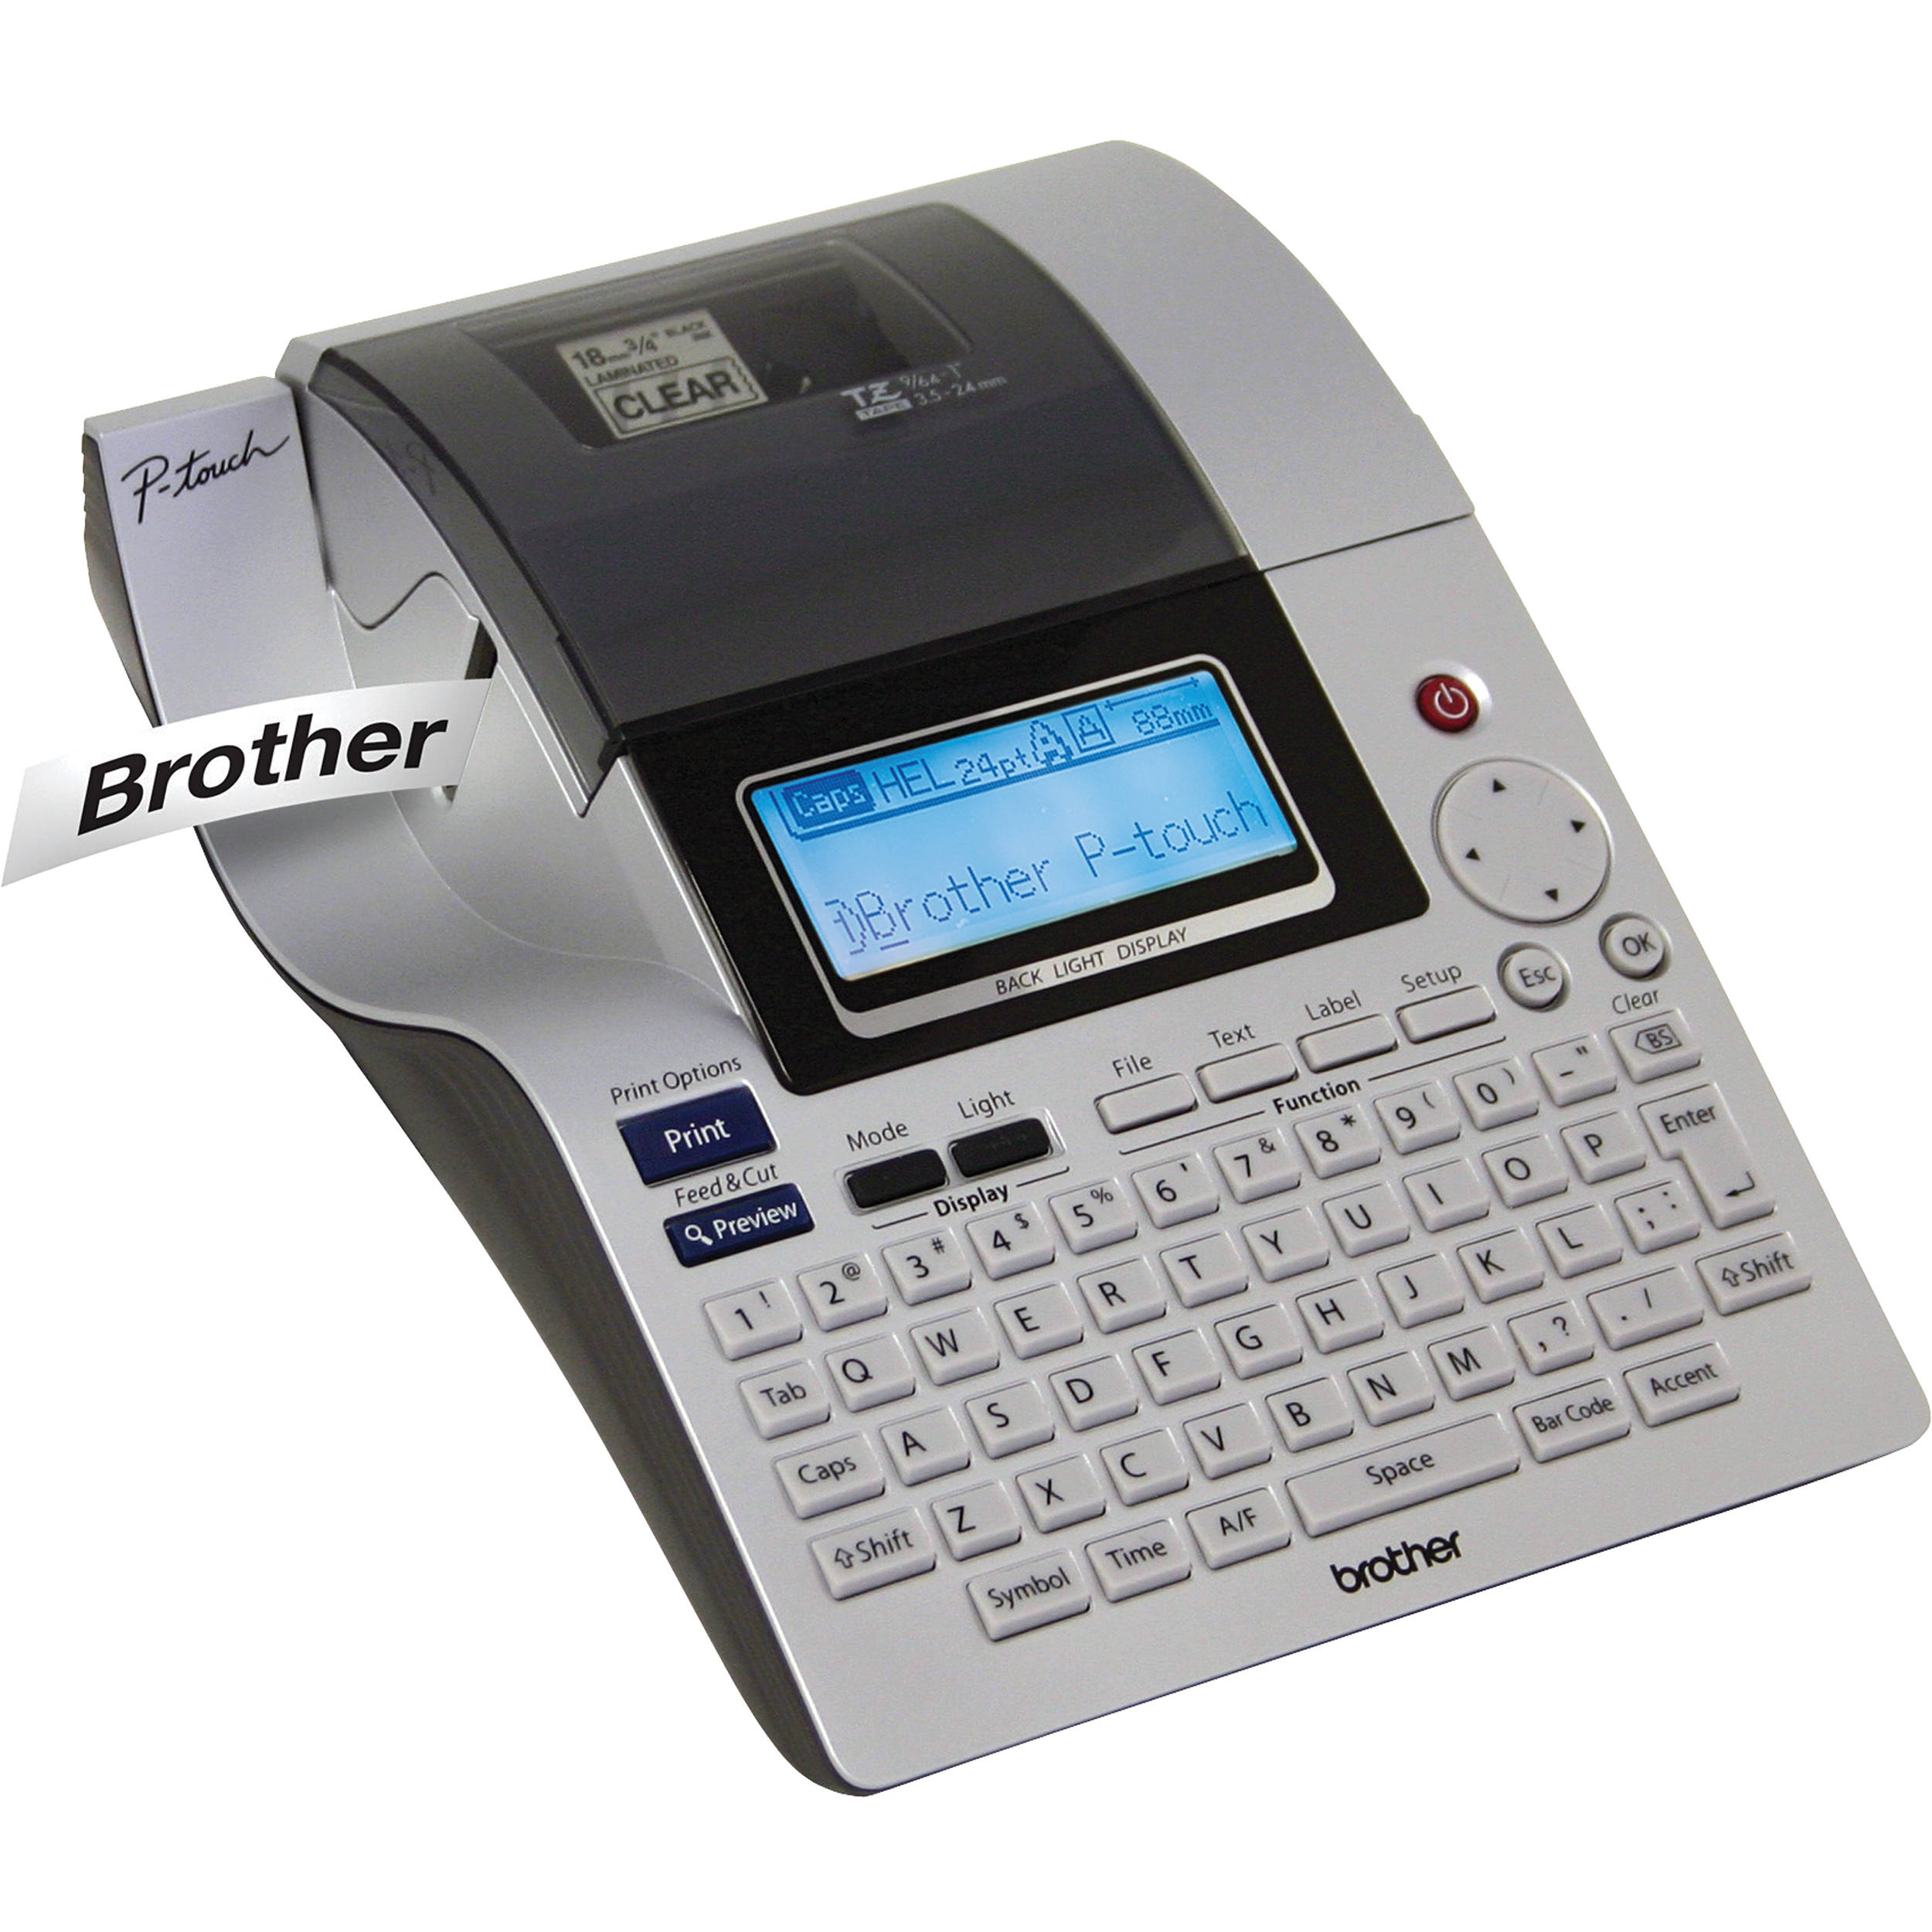 BROTHER P TOUCH 2700 WINDOWS 7 X64 DRIVER